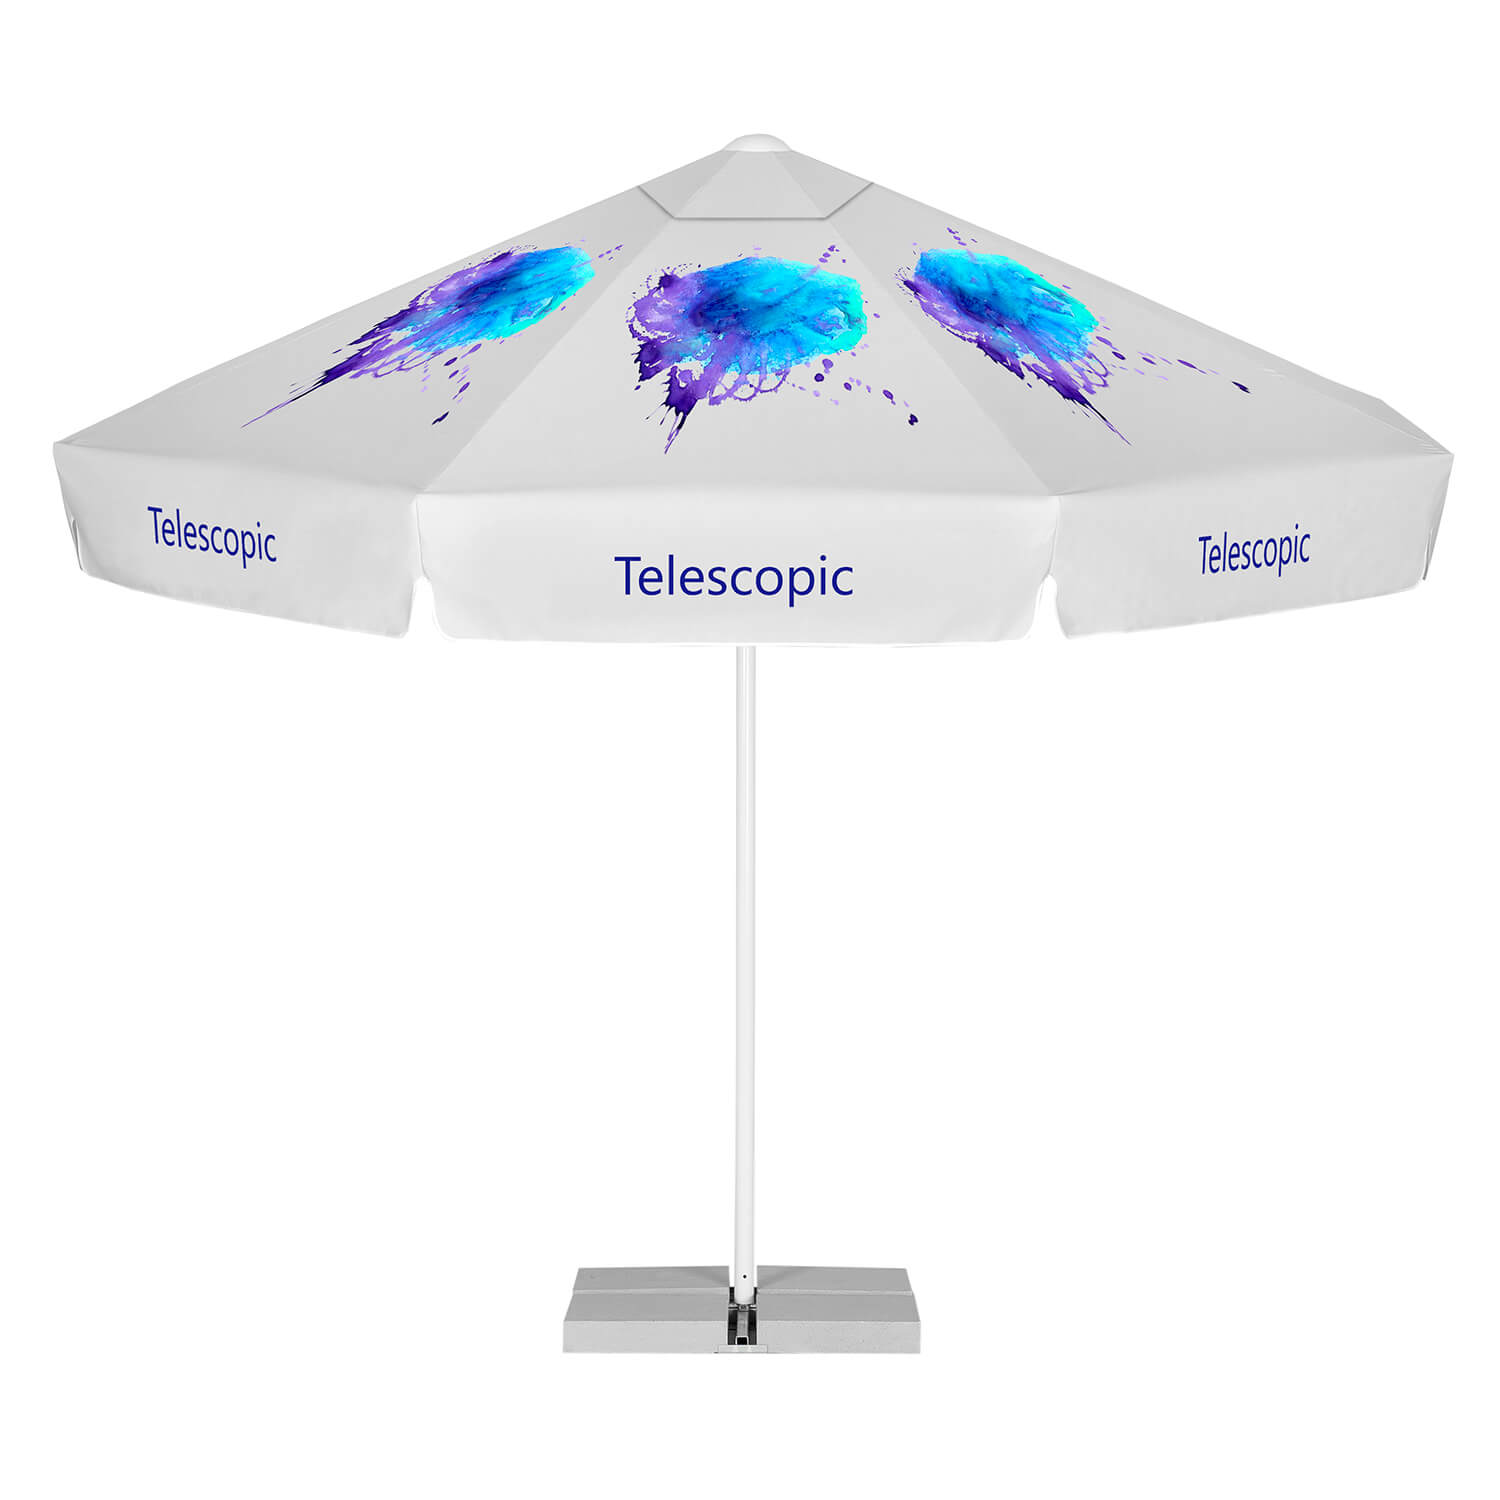 2. Advertising parasols with telescopic handle